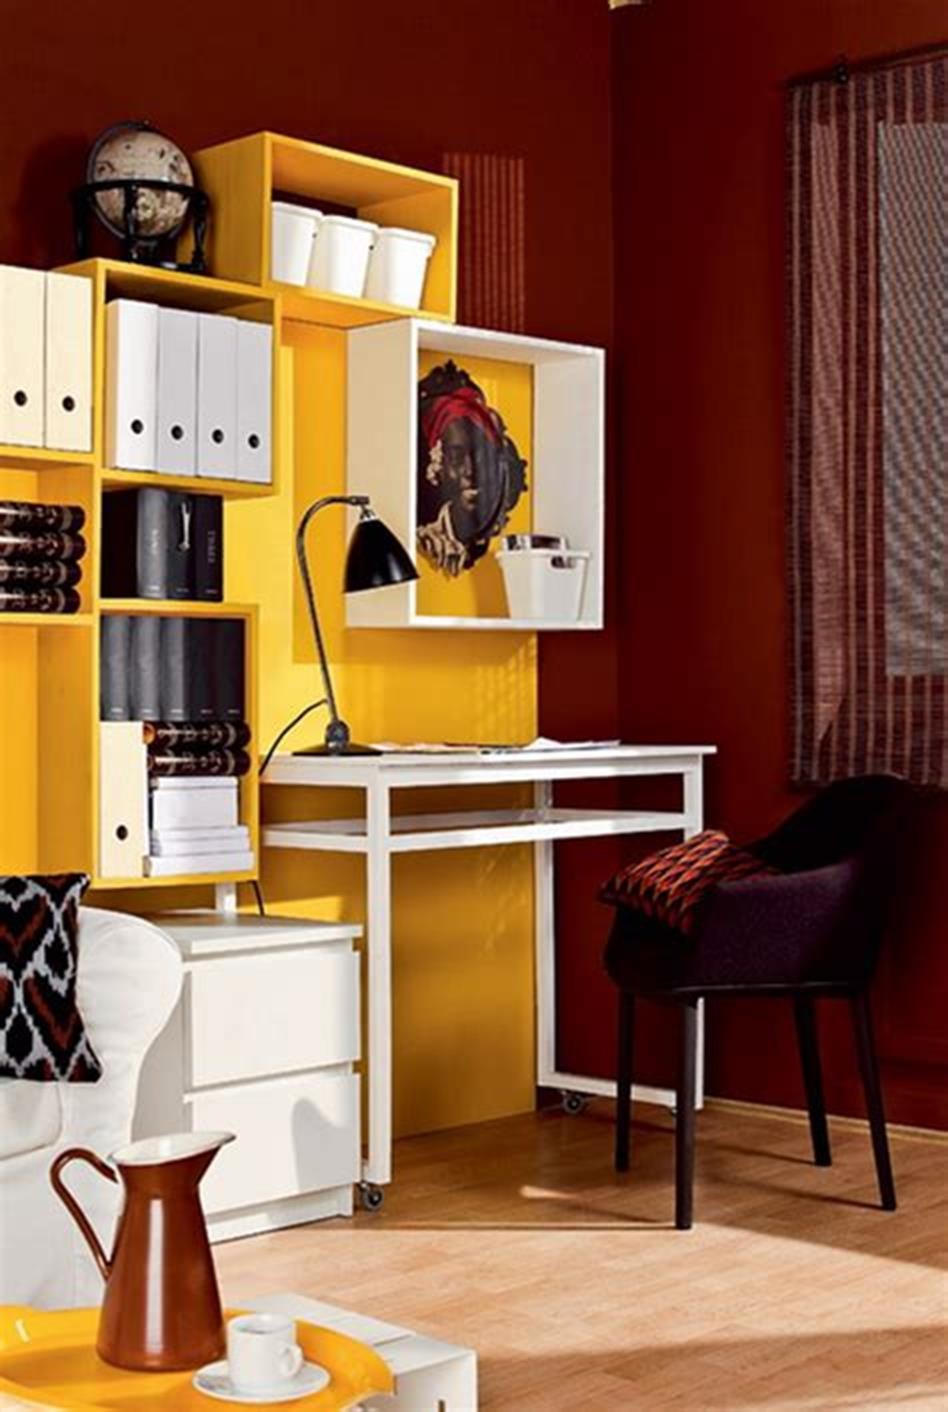 50 Best Small Space Office Decorating Ideas On a Budget 2019 30